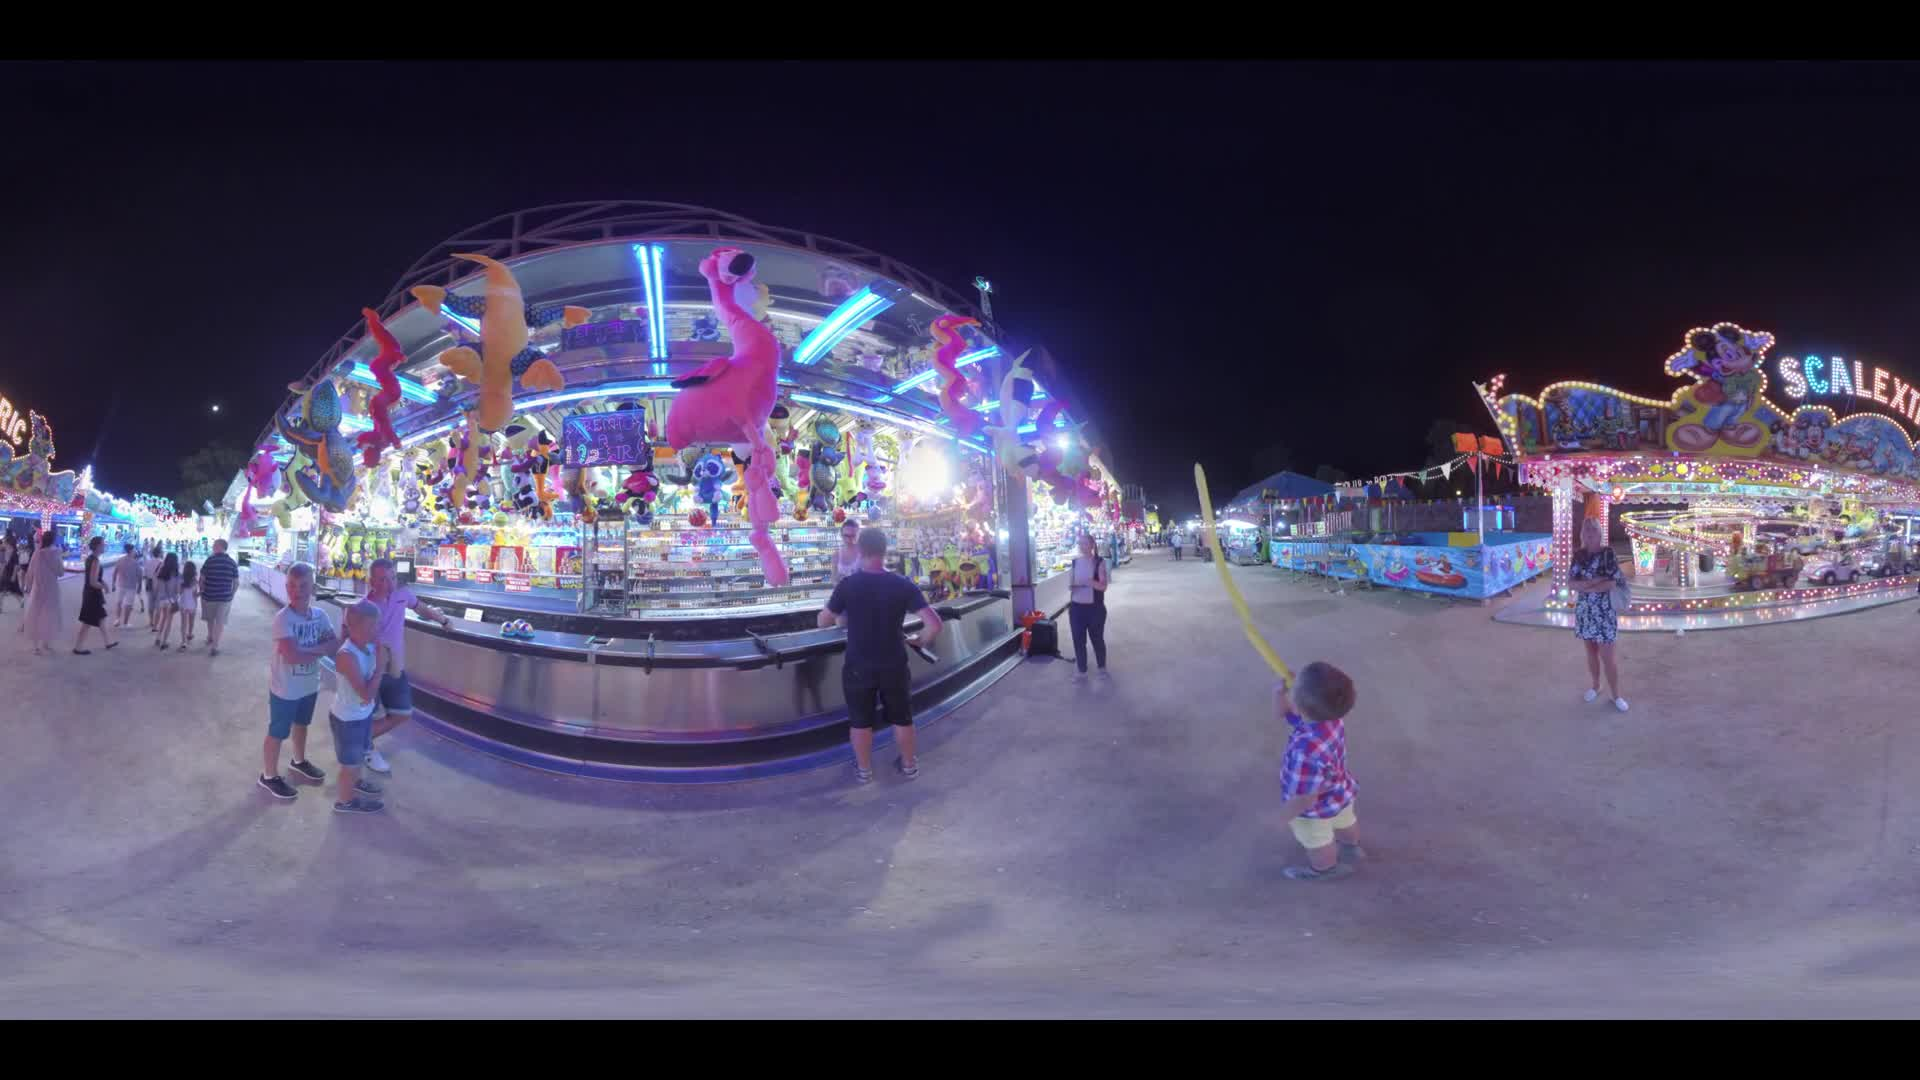 VALENCIA, SPAIN - JULY 15 2016: 360 VR video. People entertaining in amusement park at night. There are many illuminated fairground attractions. Man and his family (with model release) trying to win prize in shooting gallery